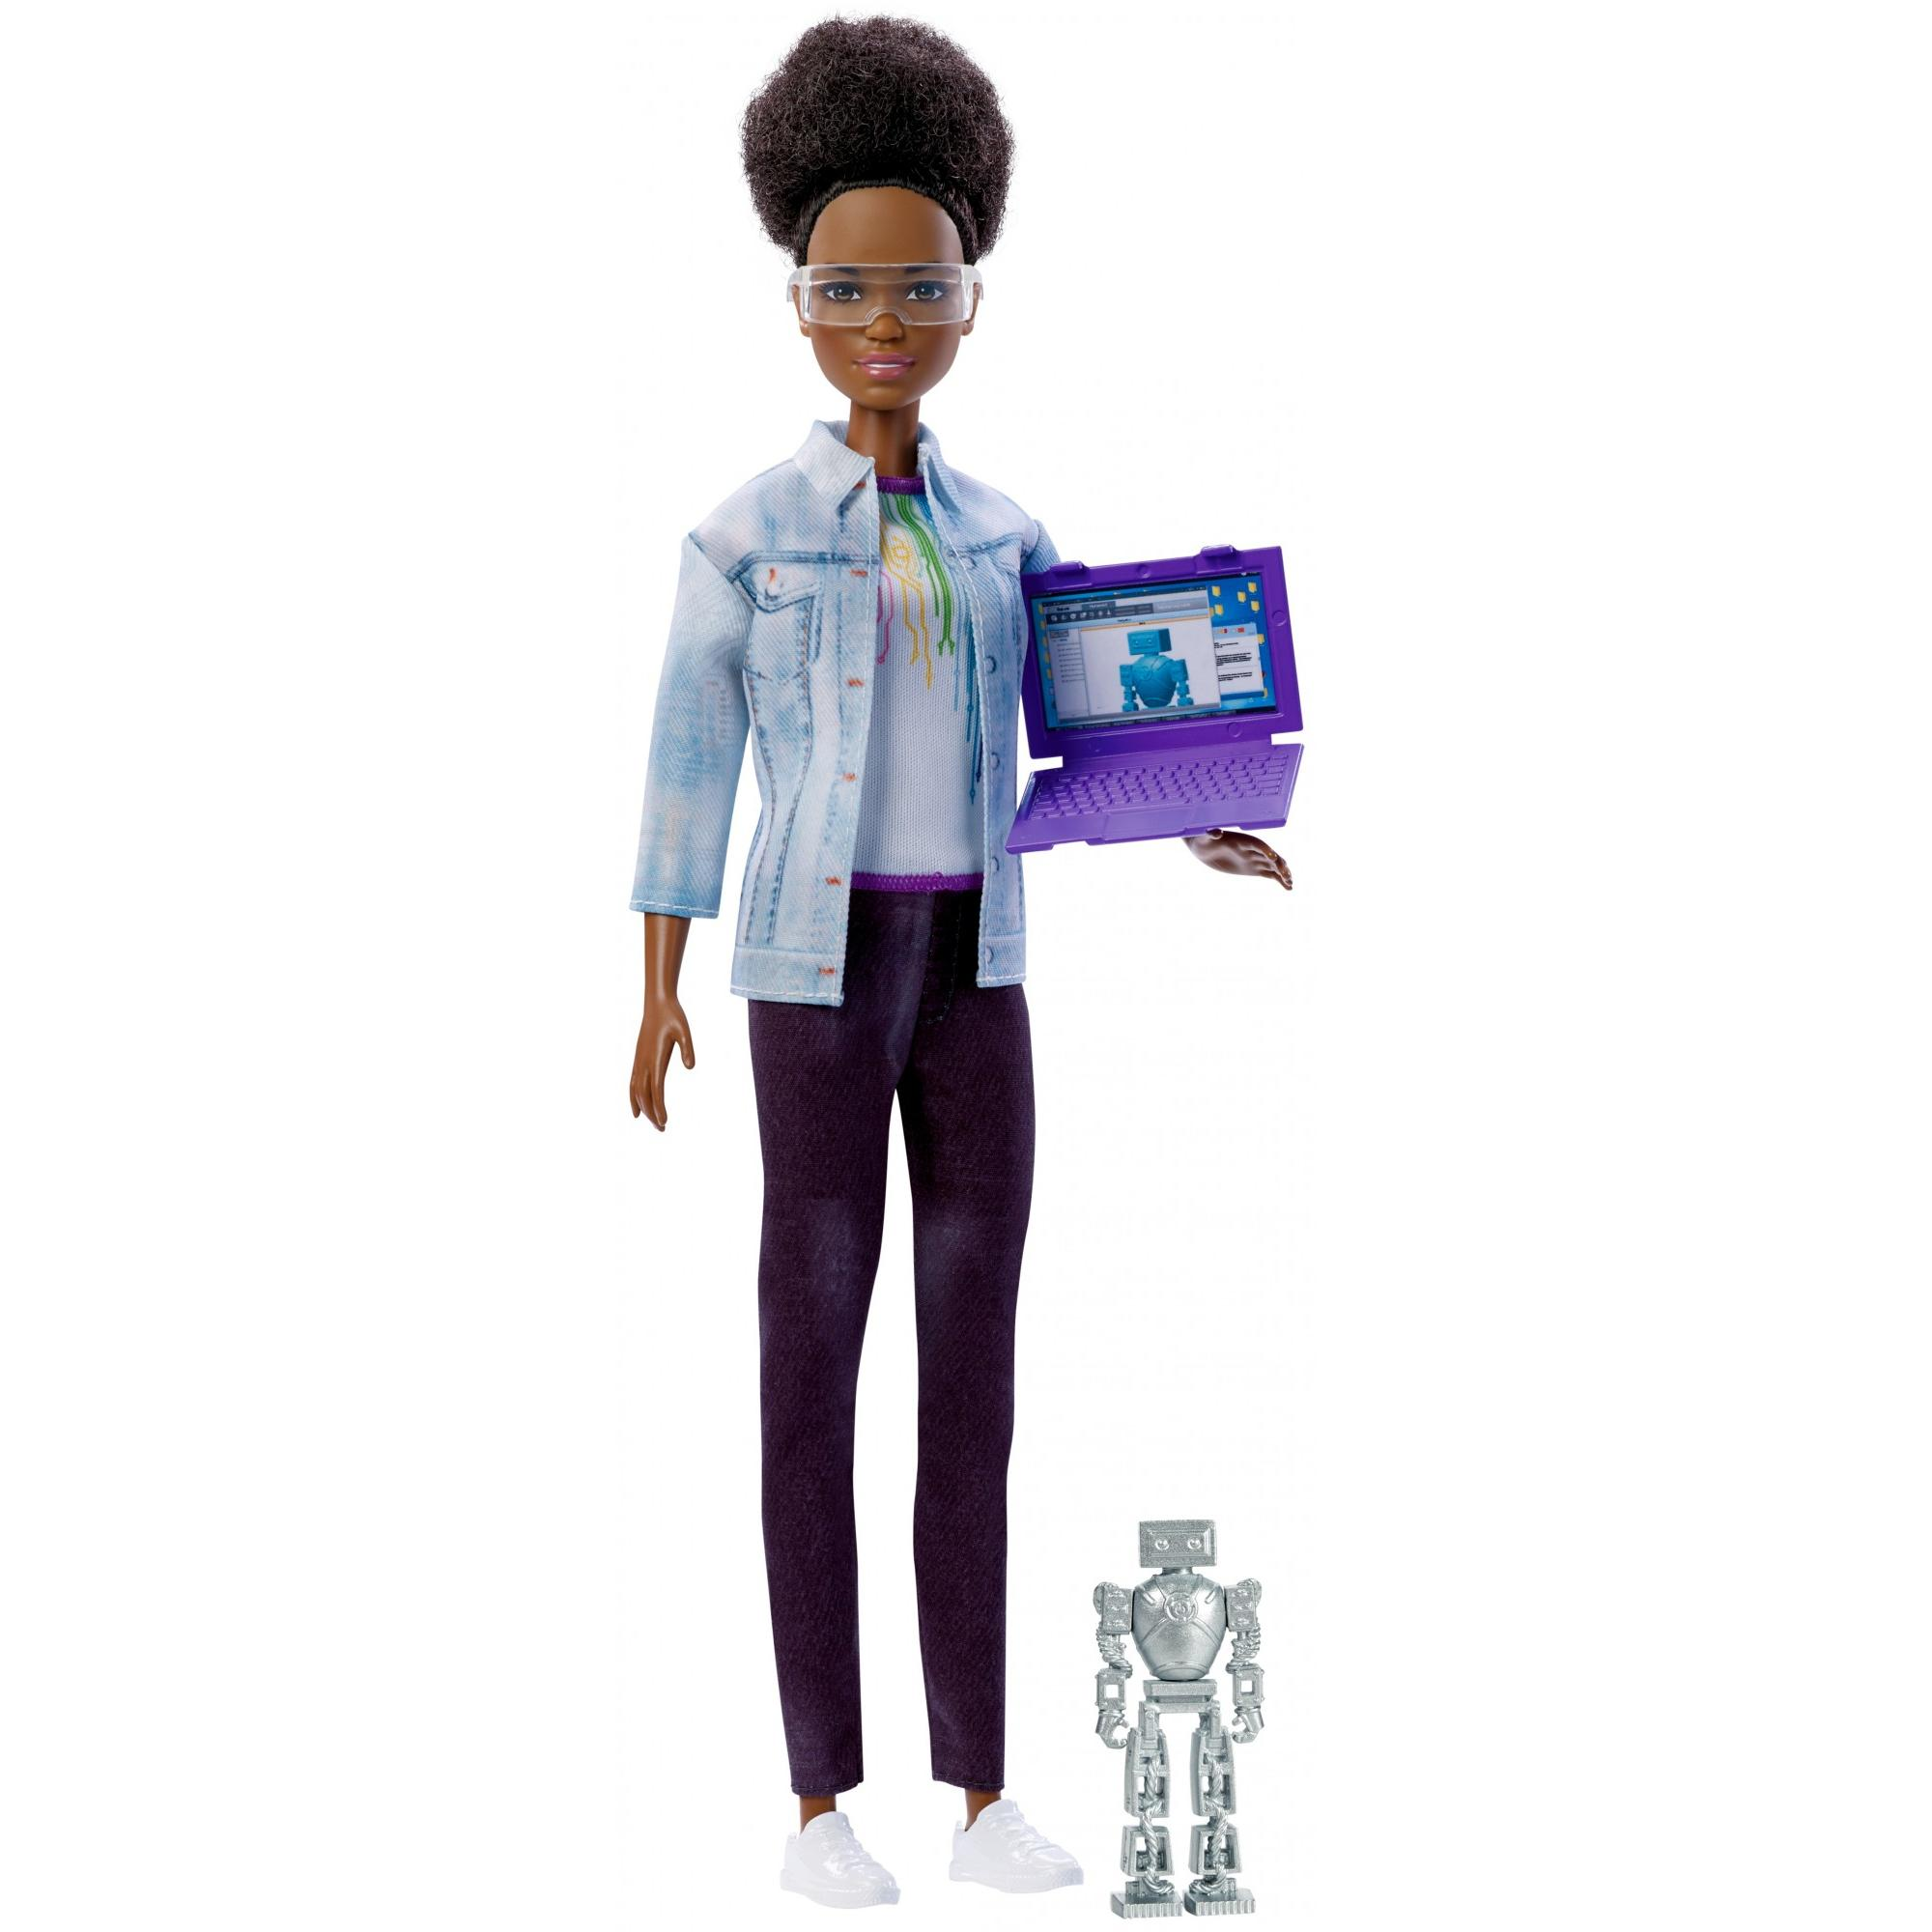 Barbie Careers Robotics Engineer Doll, Dark Brown Hair by Mattel